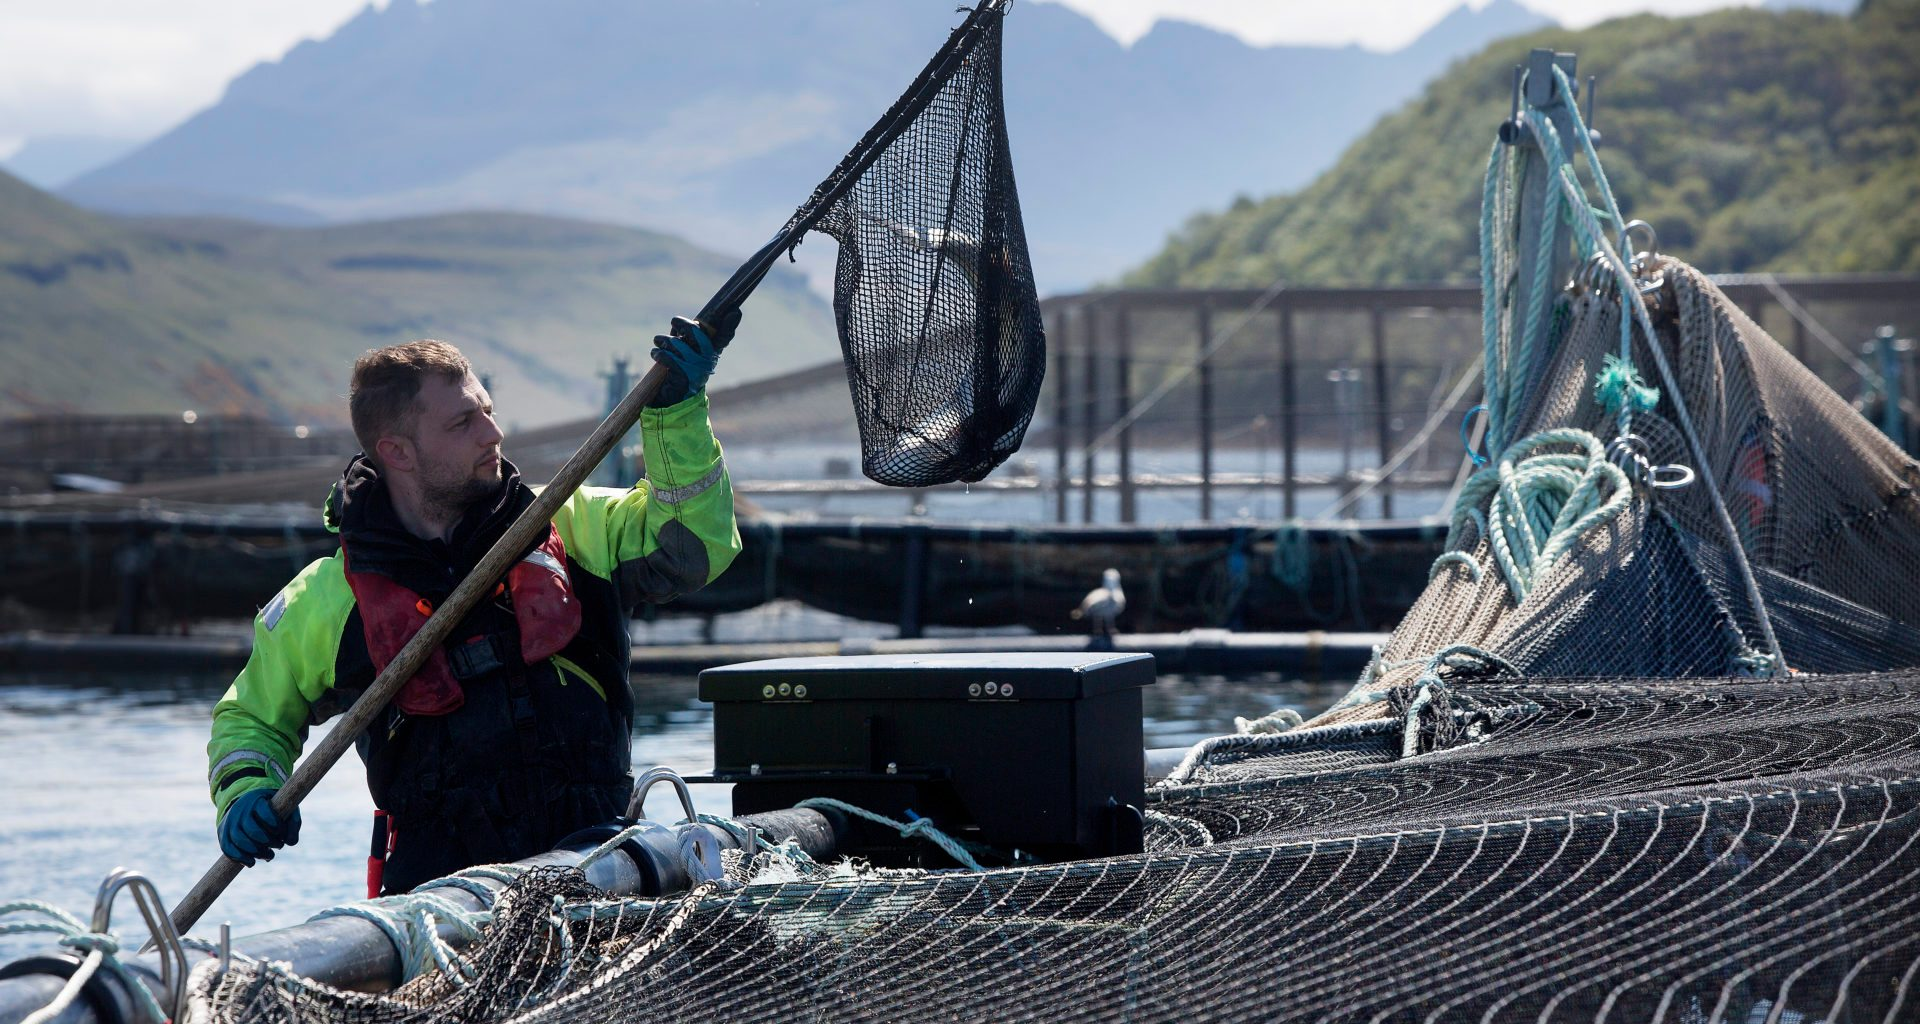 Troubled waters: communities at odds on fish farming 8